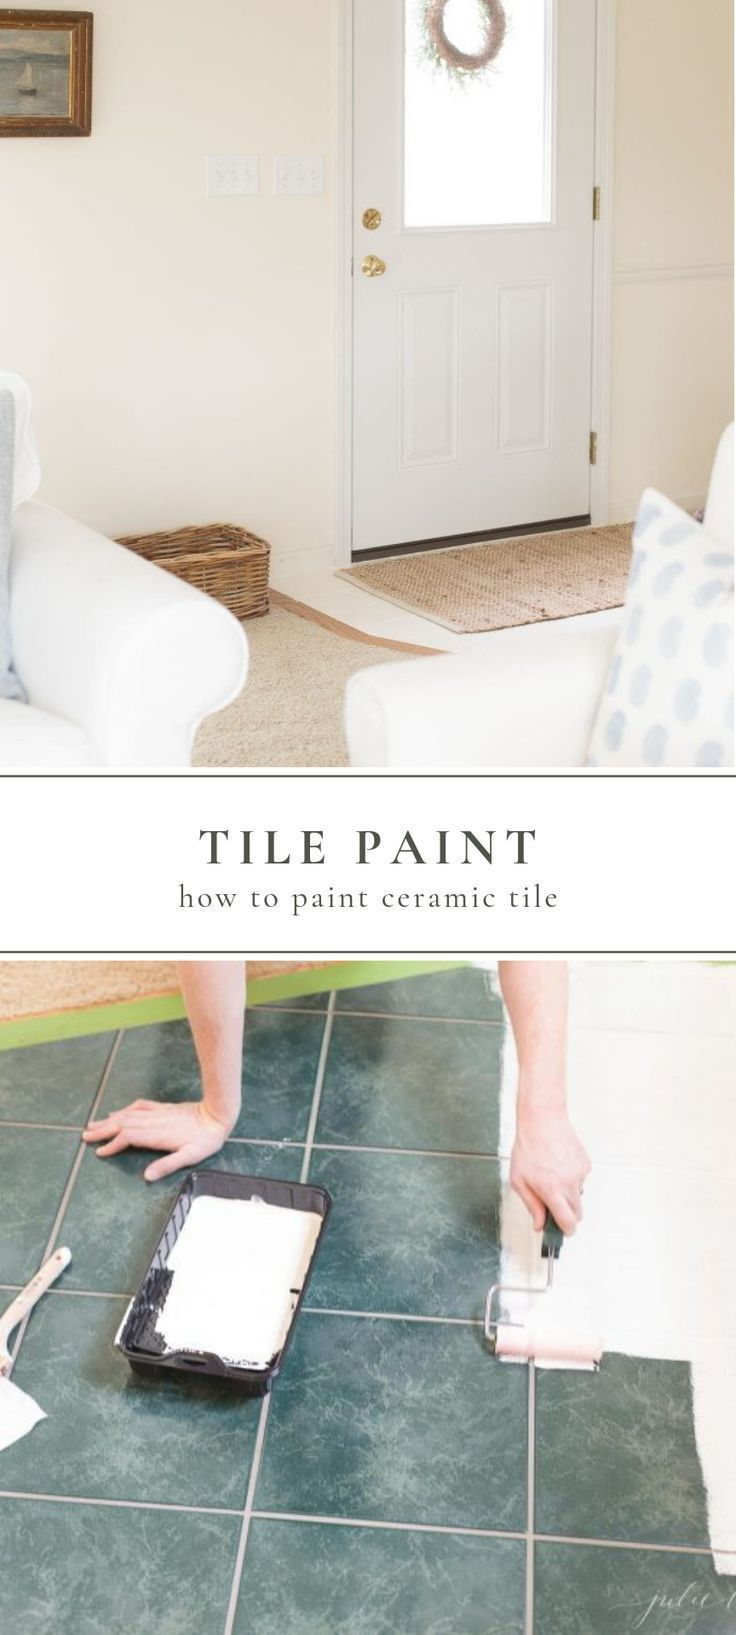 All About How To Paint Ceramic Tile Diy Flooring Tile Ceramictile Painttile Painting Ceramic Tiles Painting Tile Painting Bathroom Tiles